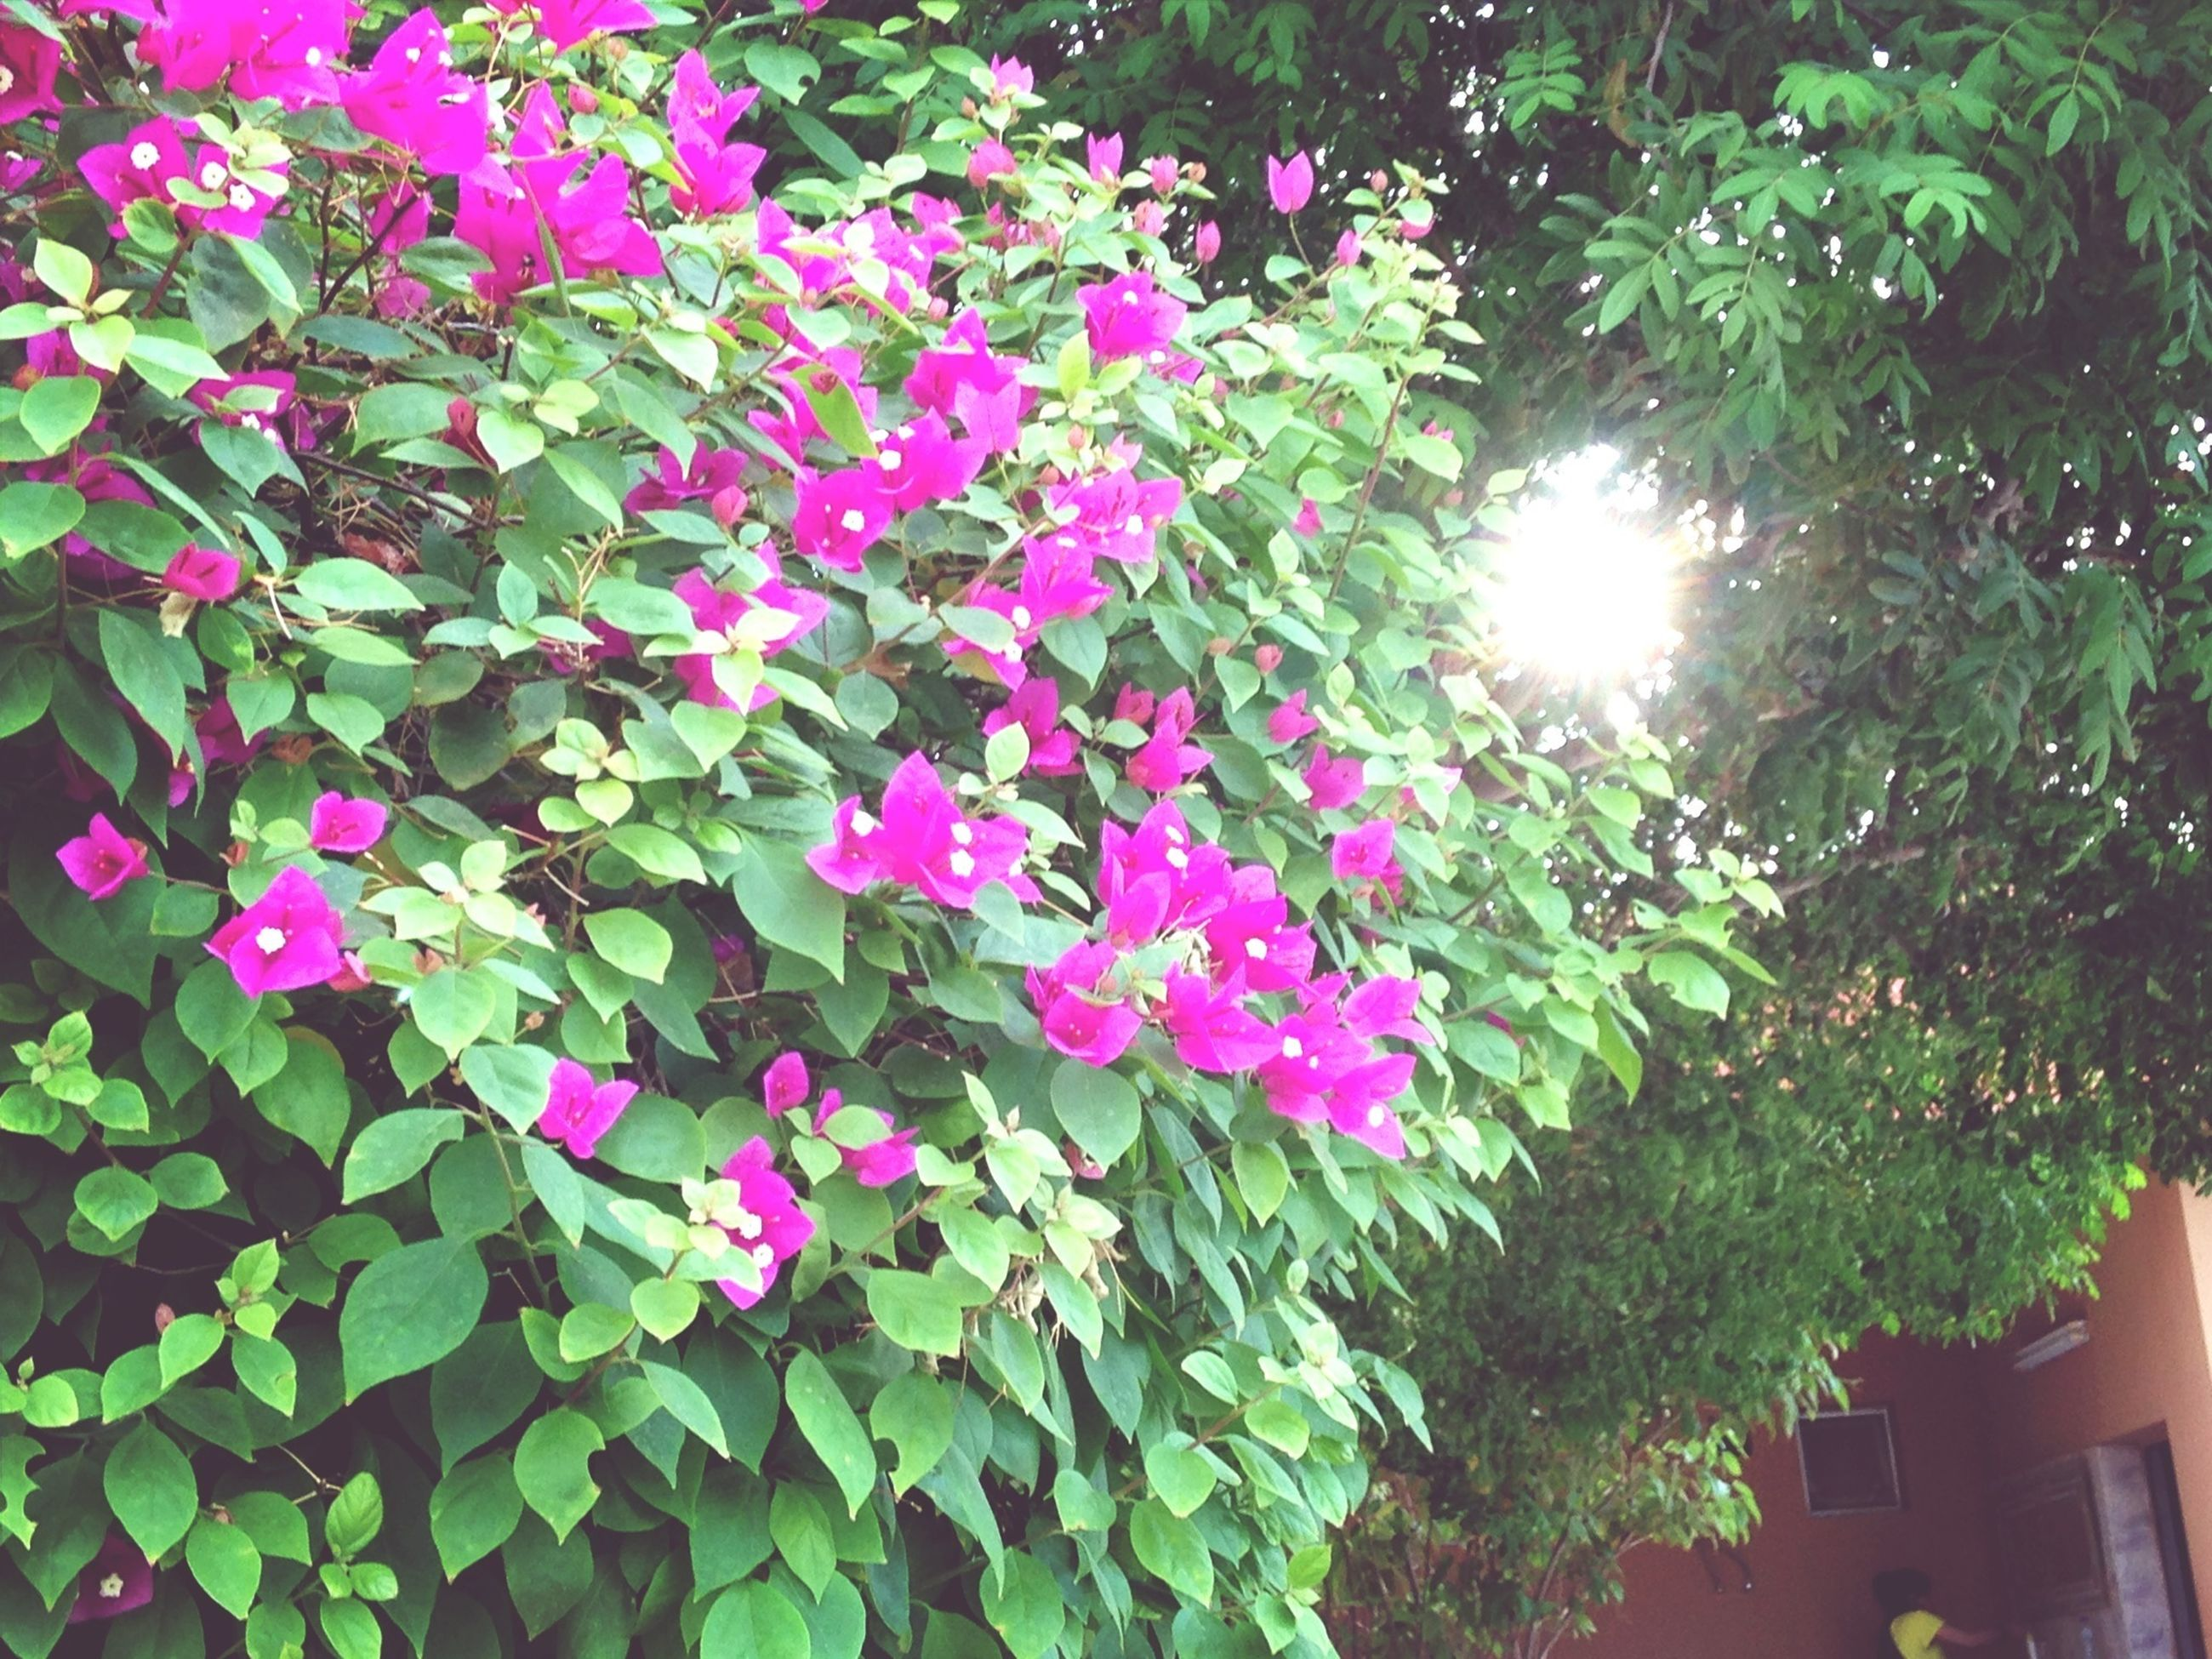 flower, growth, freshness, petal, fragility, beauty in nature, pink color, plant, leaf, nature, blooming, sunlight, flower head, in bloom, green color, day, park - man made space, outdoors, blossom, front or back yard